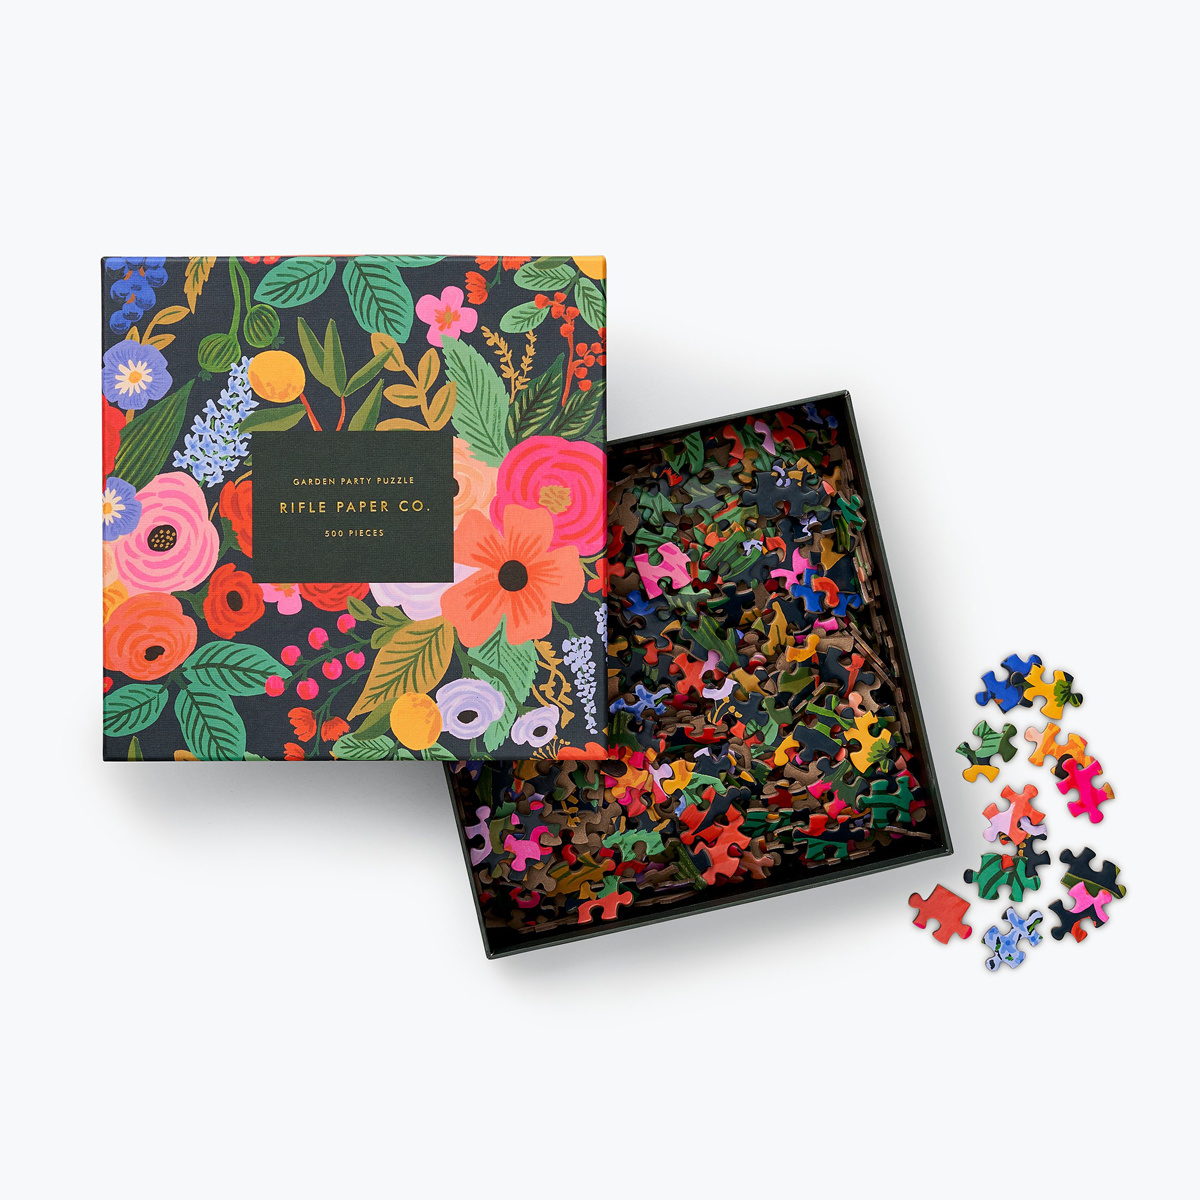 Rifle Paper Co - RP Rifle Paper Co - Garden Party Jigsaw Puzzle